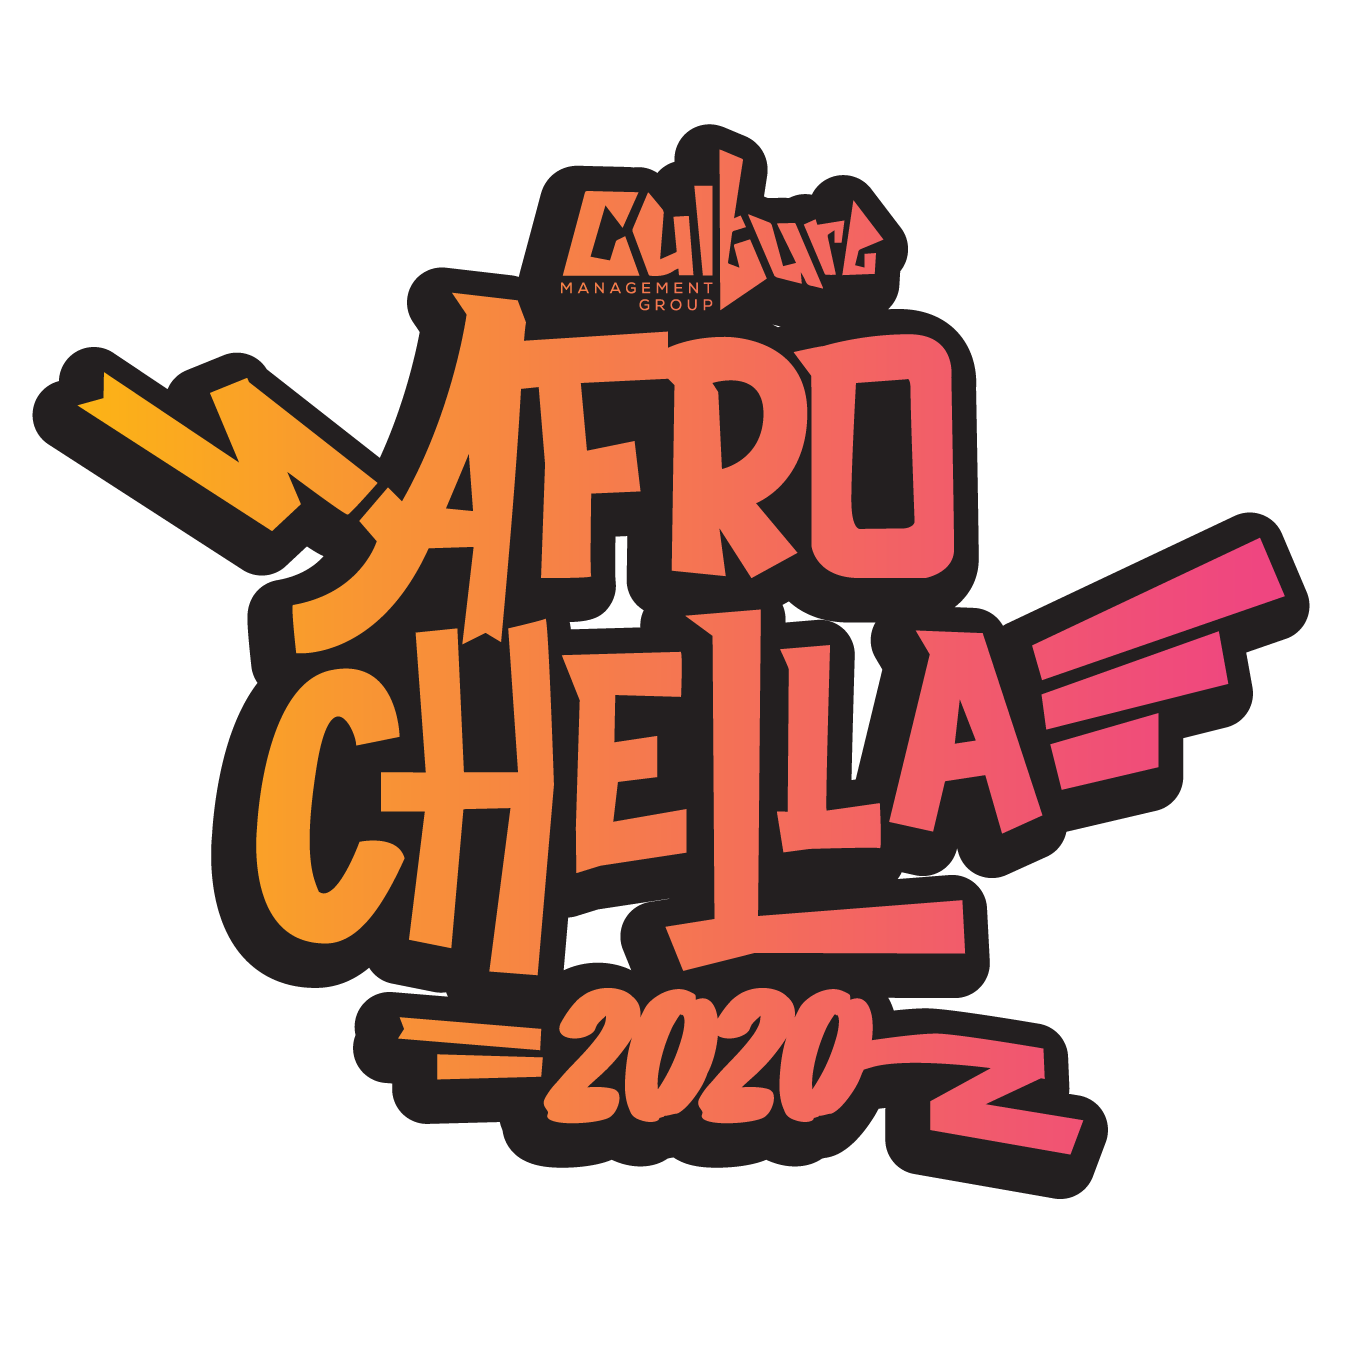 Afrochella - The celebration of African culture.